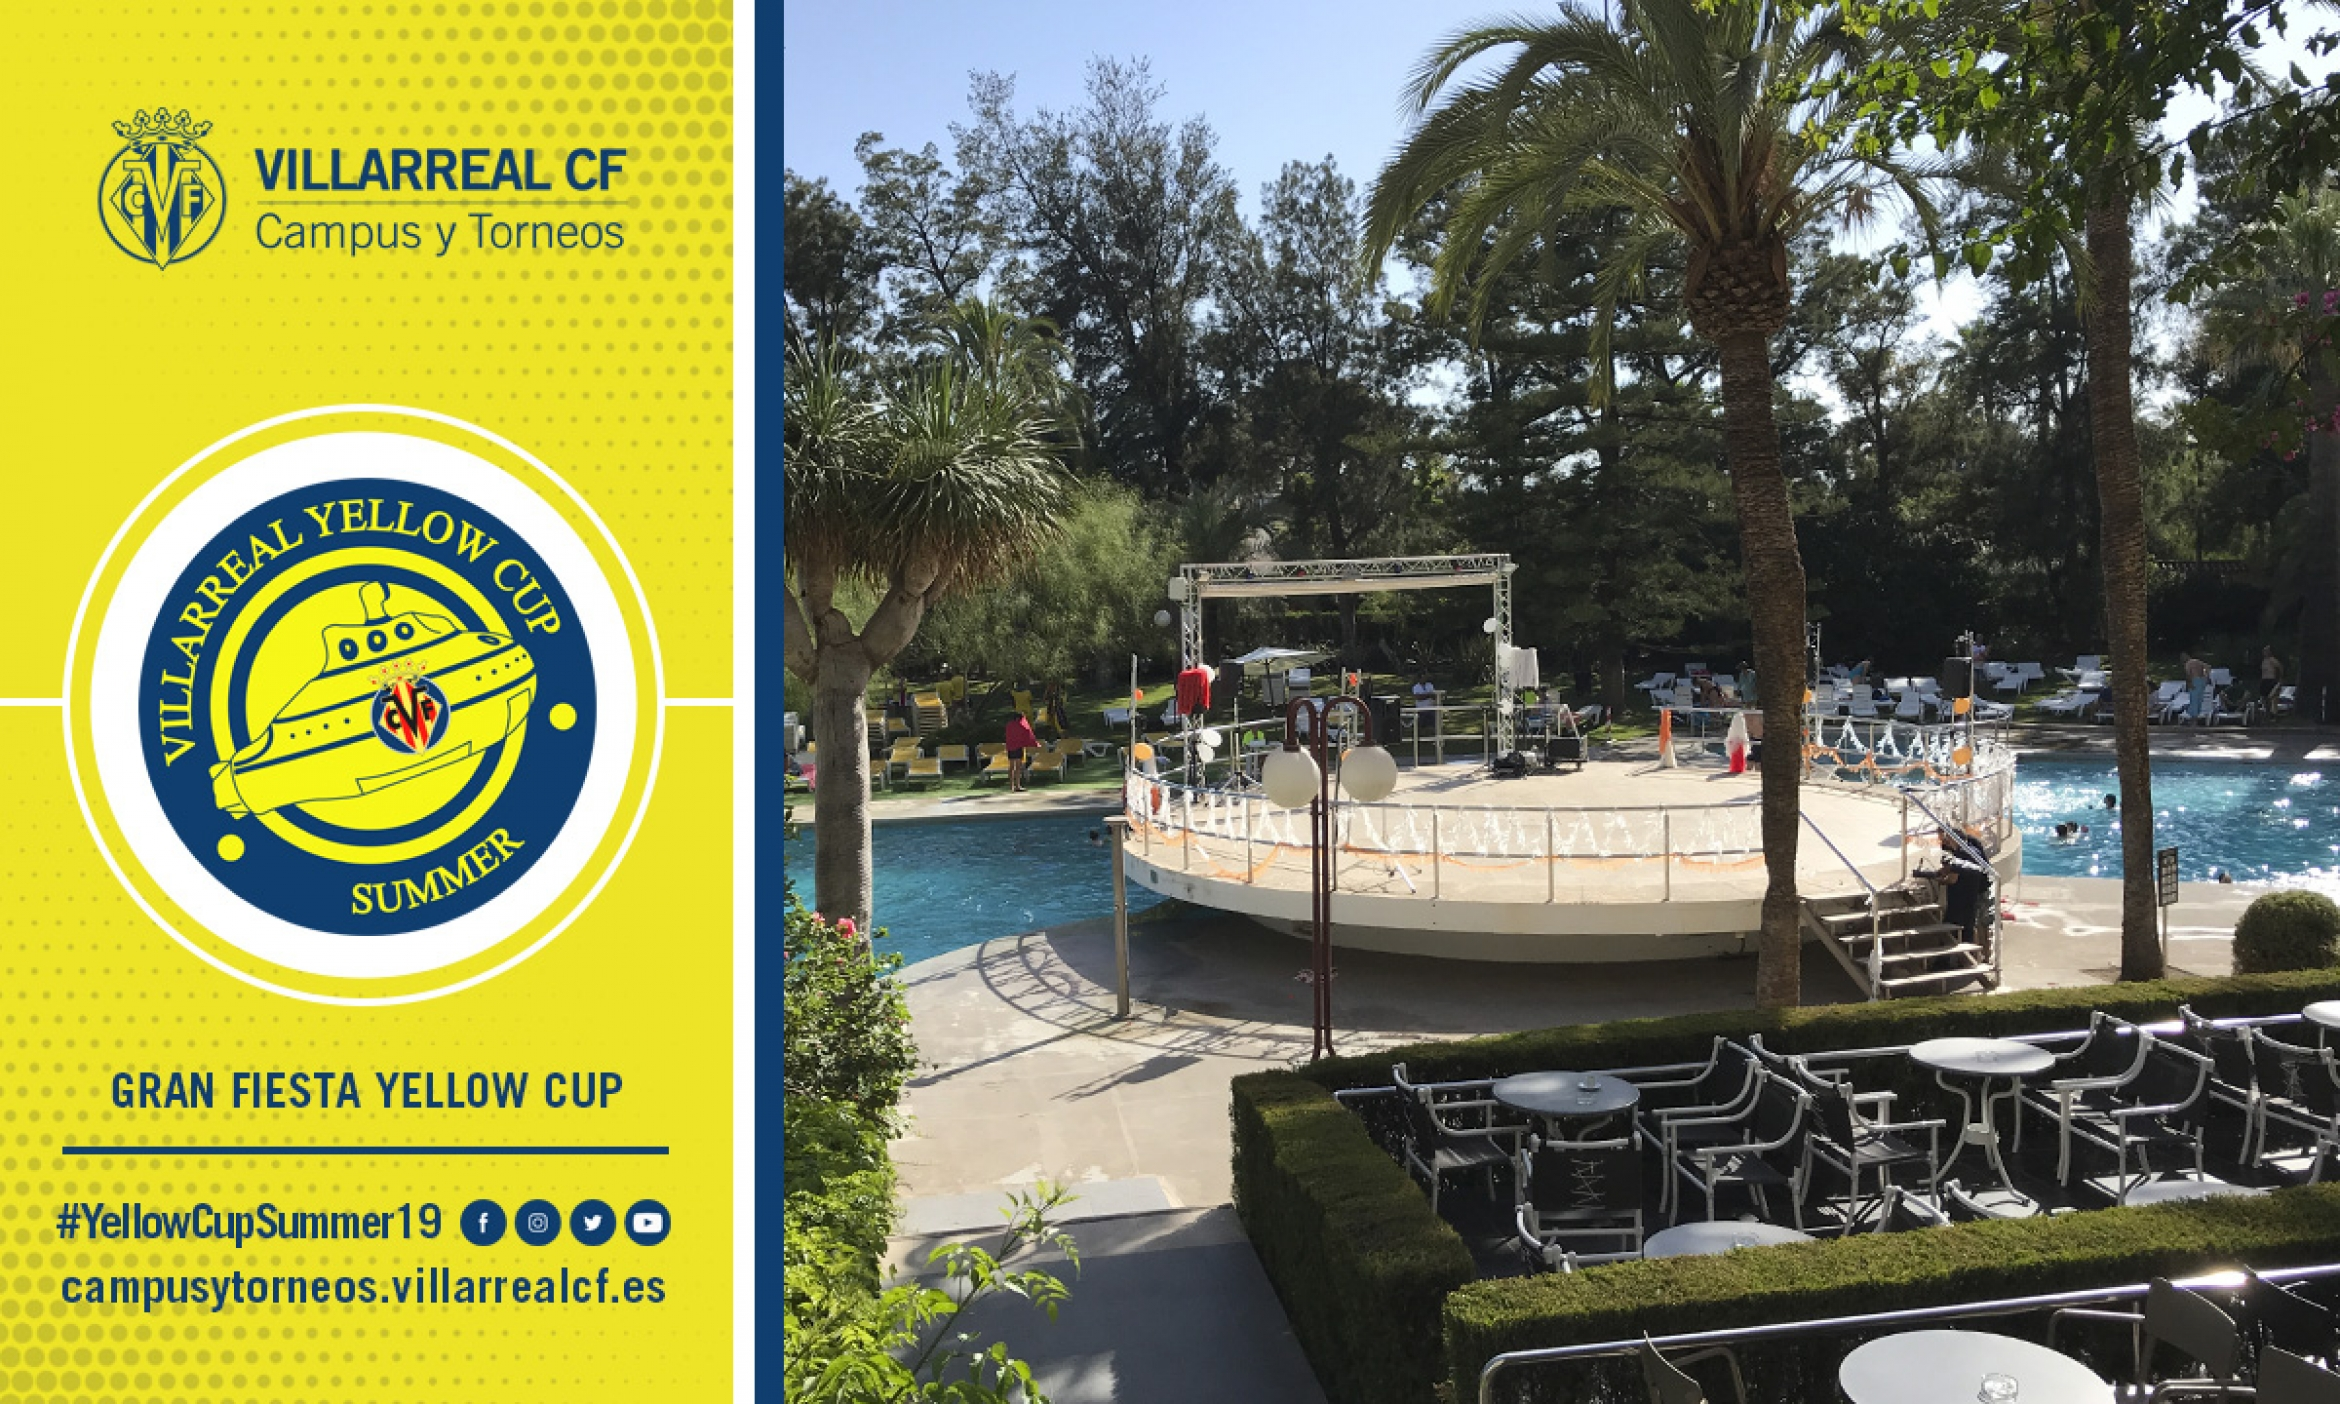 GRAN FIESTA DE LA YELLOW CUP SUMMER